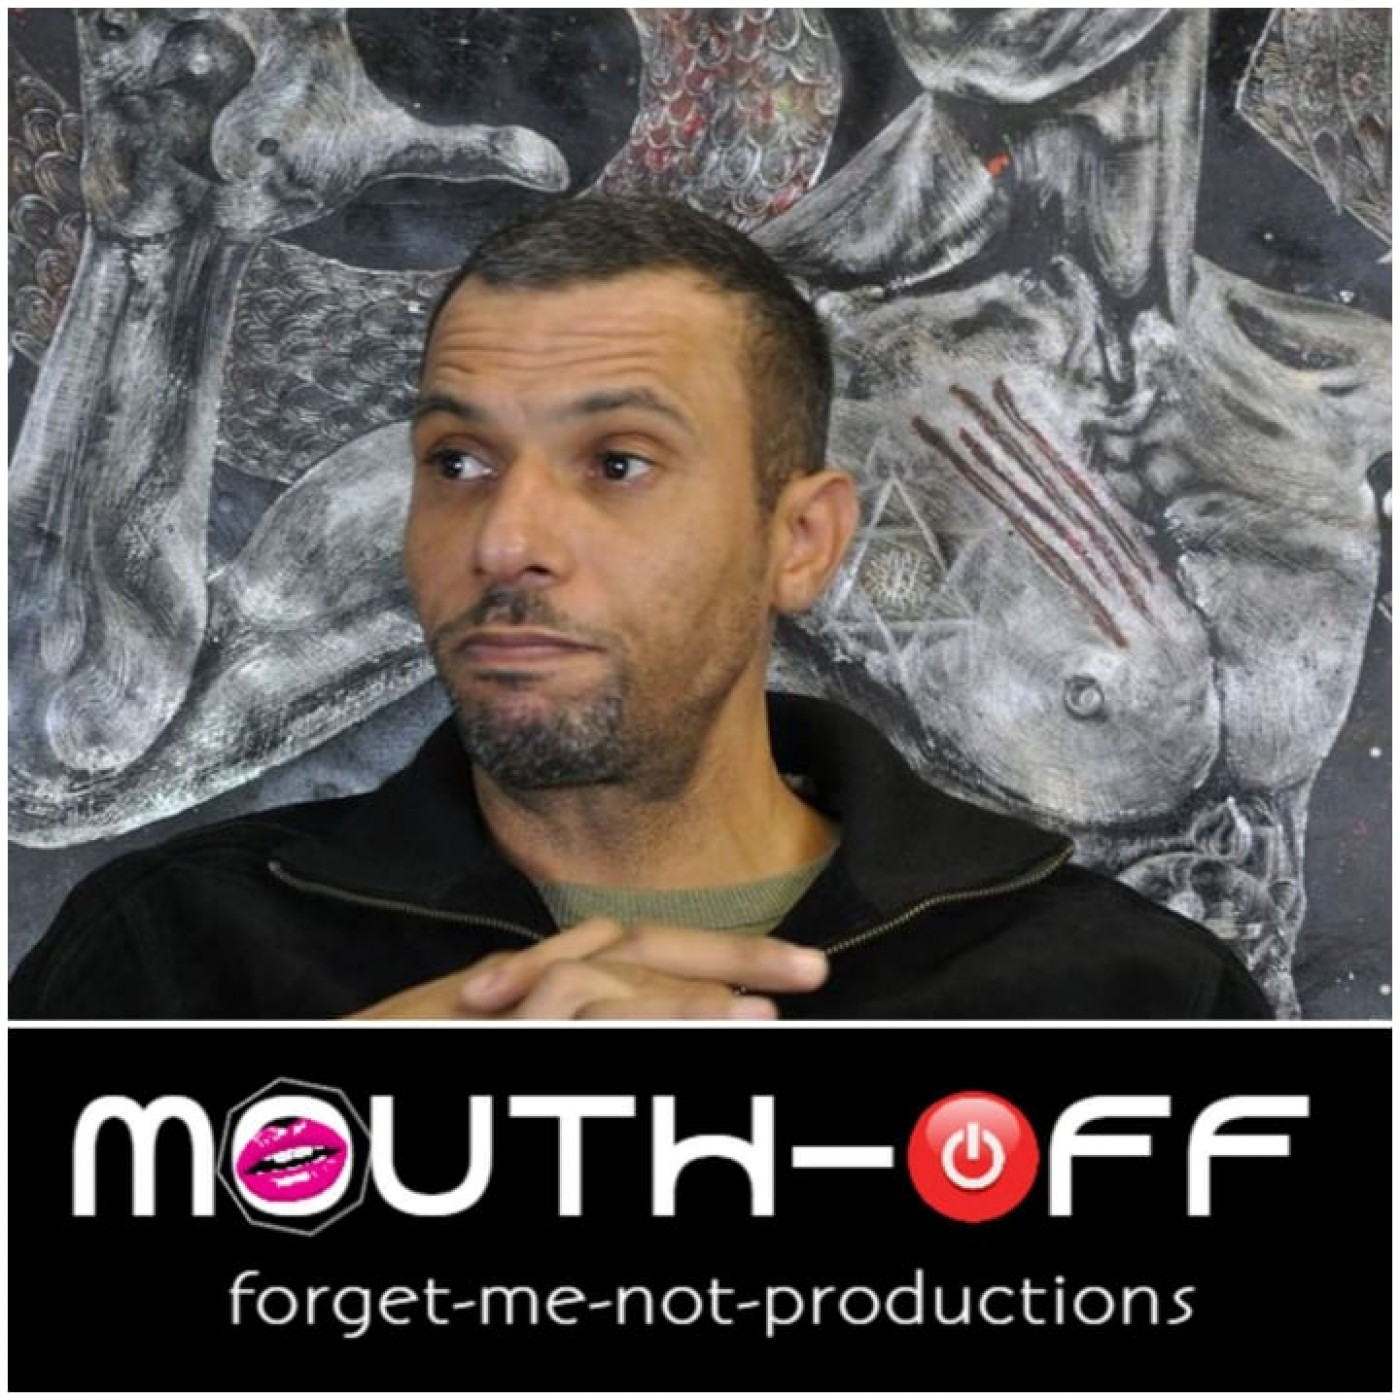 Mouth-Off Episode 17: Art attack - provoking feelings through visual arts